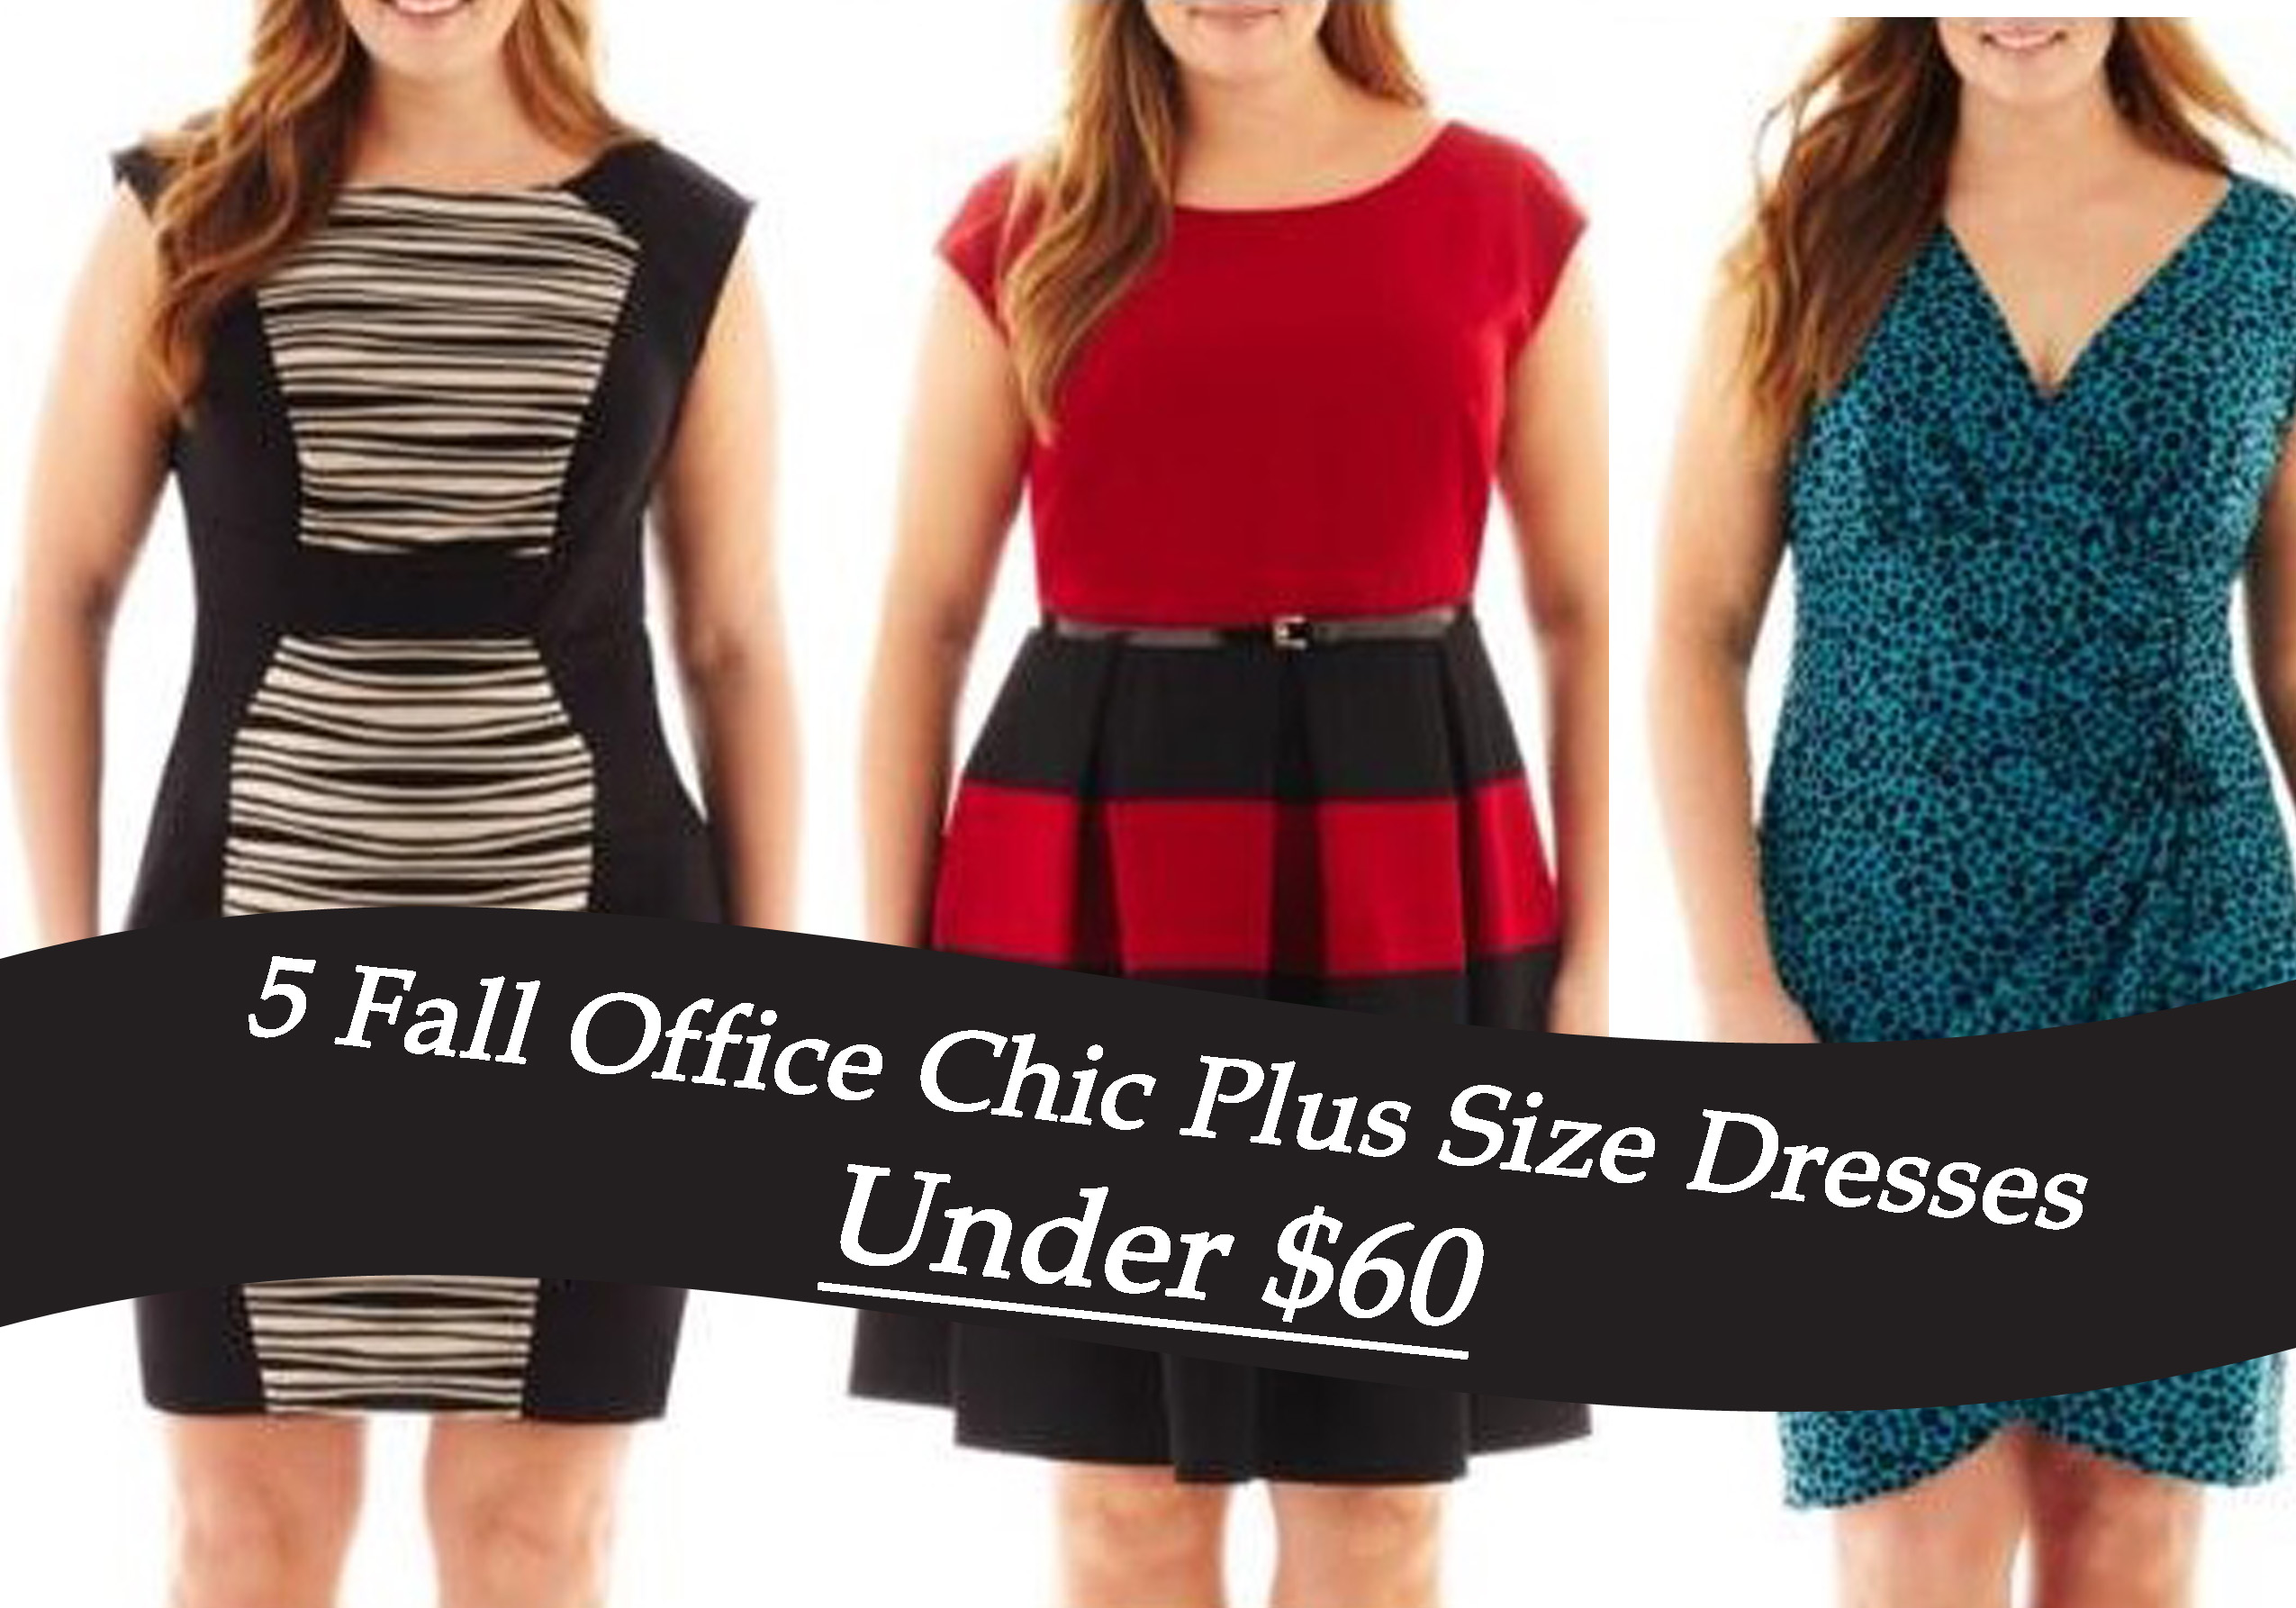 WORK-WEAR WEDNESDAY: 5 FALL OFFICE CHIC PLUS SIZE DRESSES ...